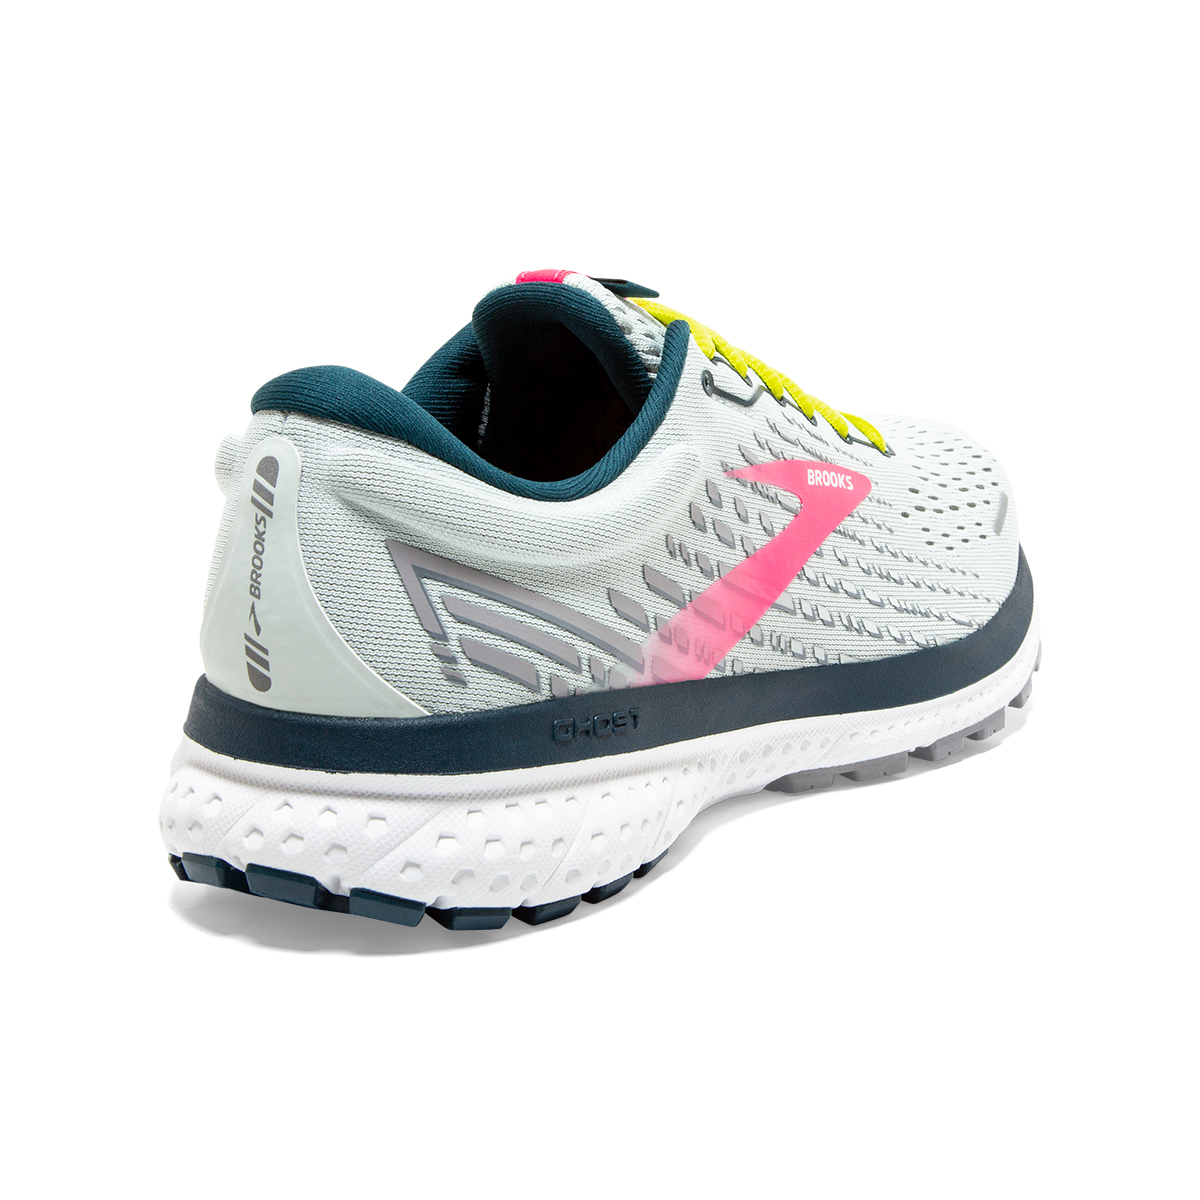 Women's Brooks Ghost 13 Running Shoes - Color: Ice Flow/Pink/Pond - Size: 5 - Width: Regular, Ice Flow/Pink/Pond, large, image 6